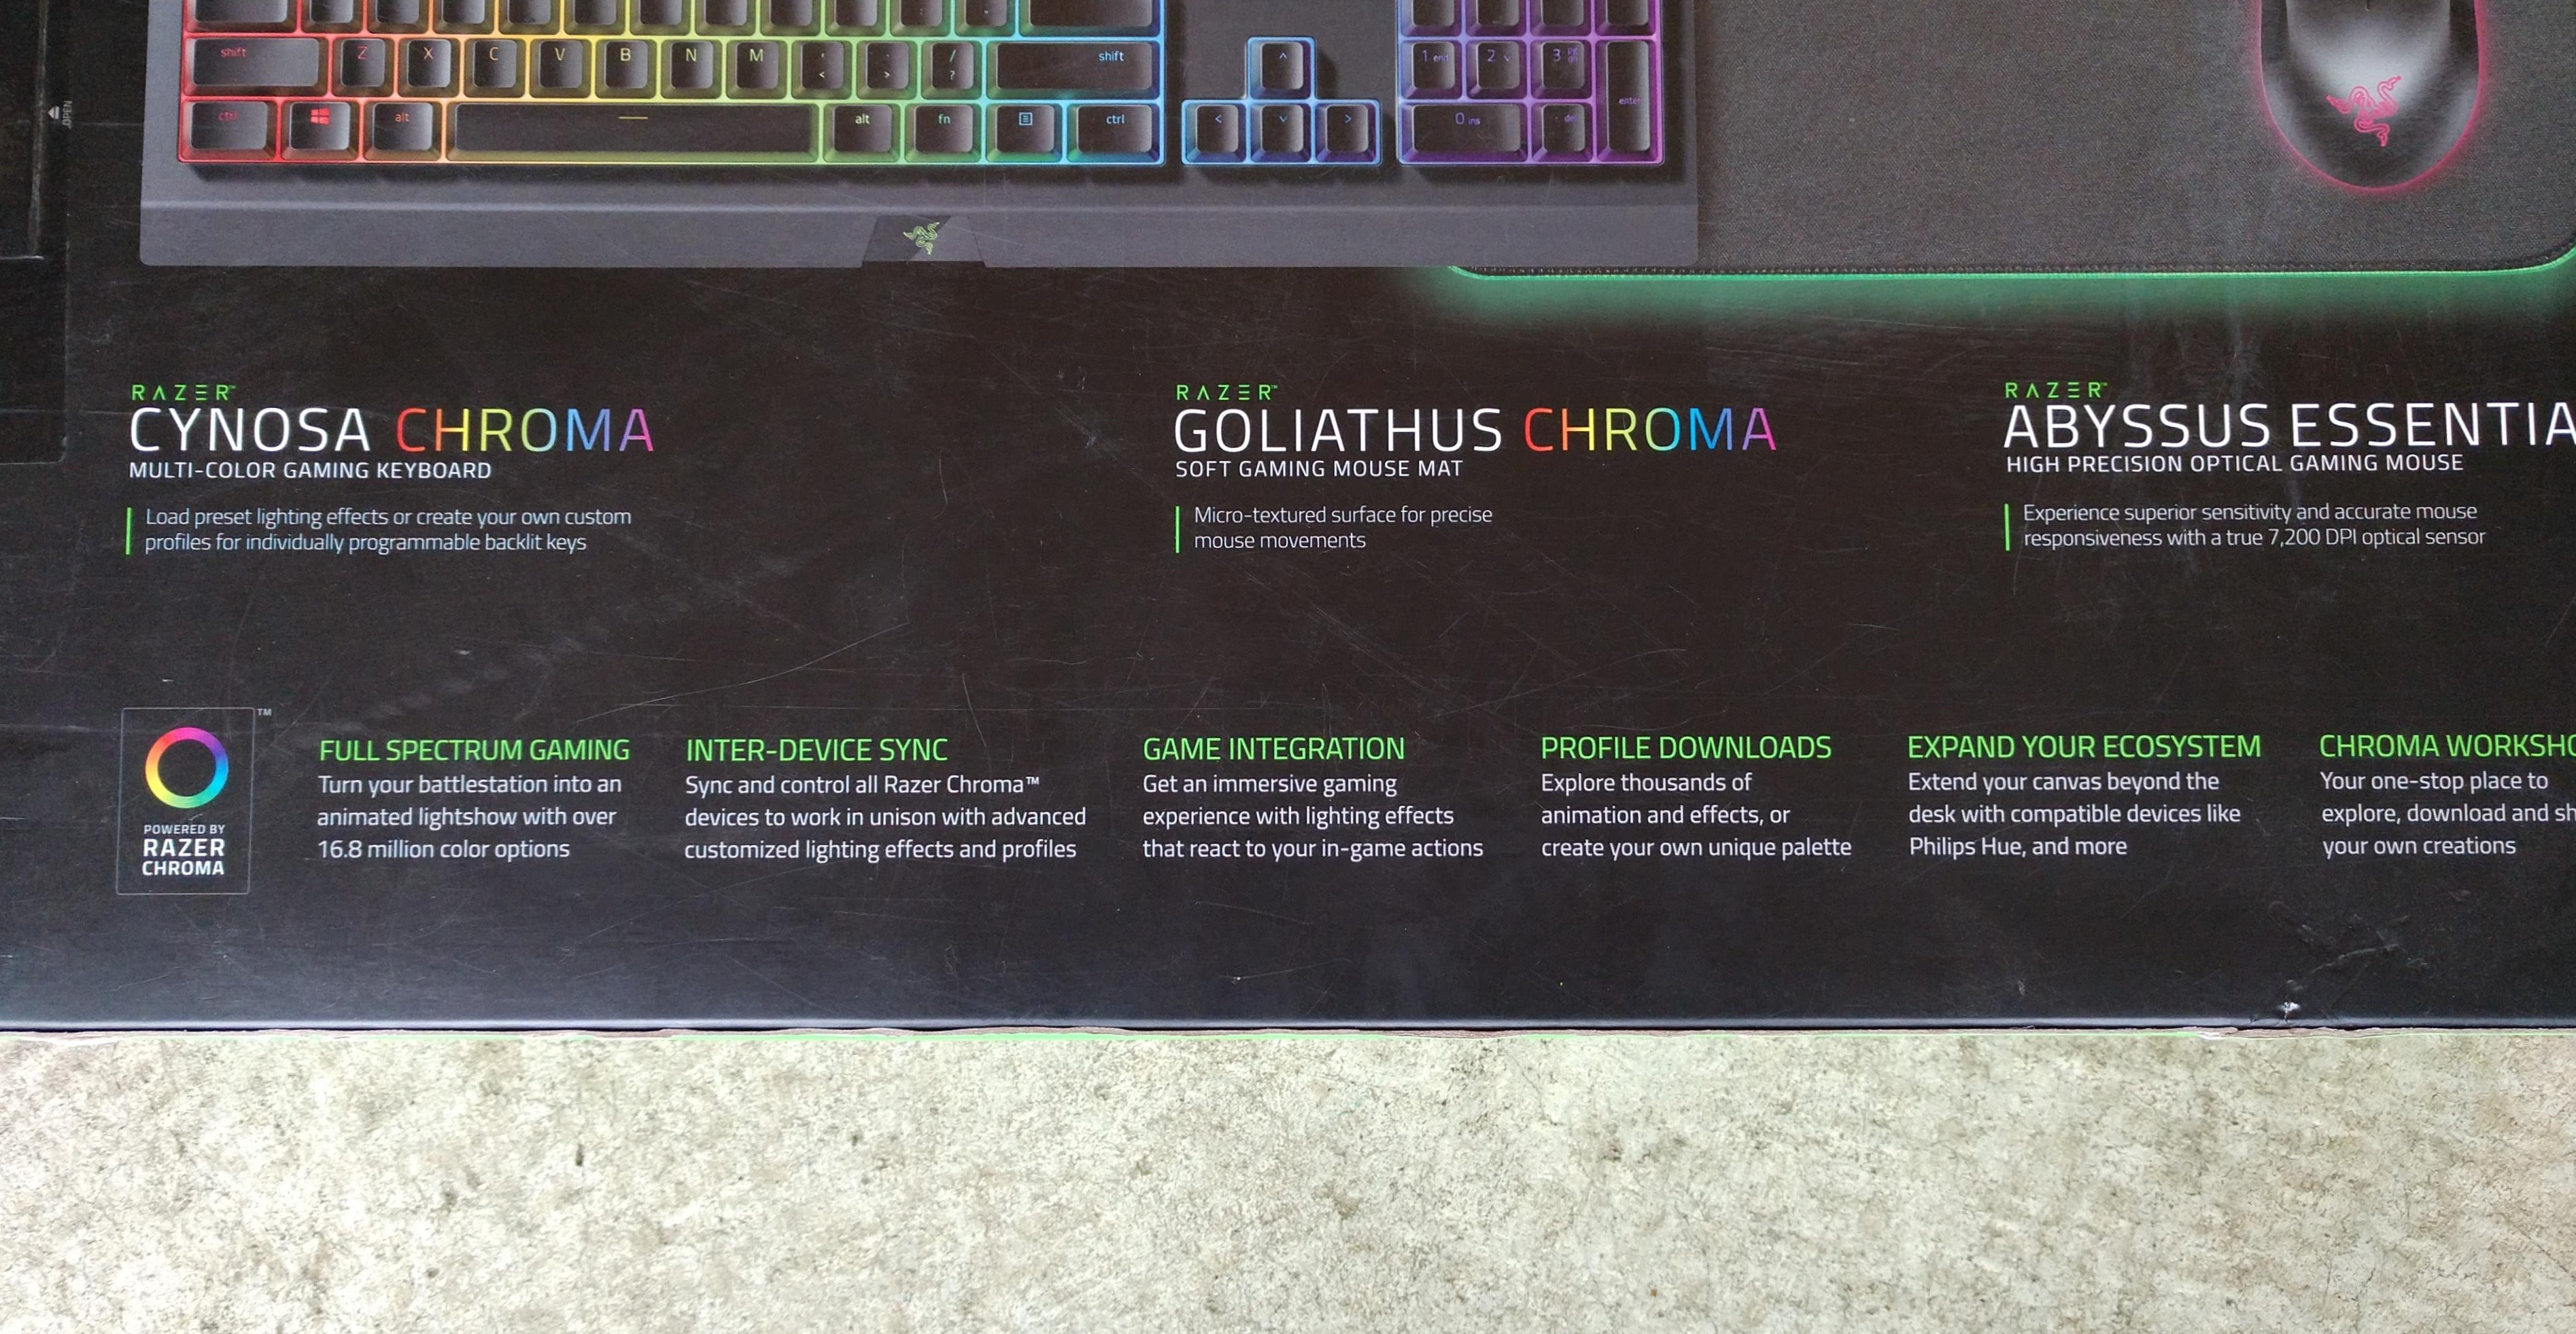 Razer Gaming Bundle - Keyboard, Mouse, and Mouse Pad